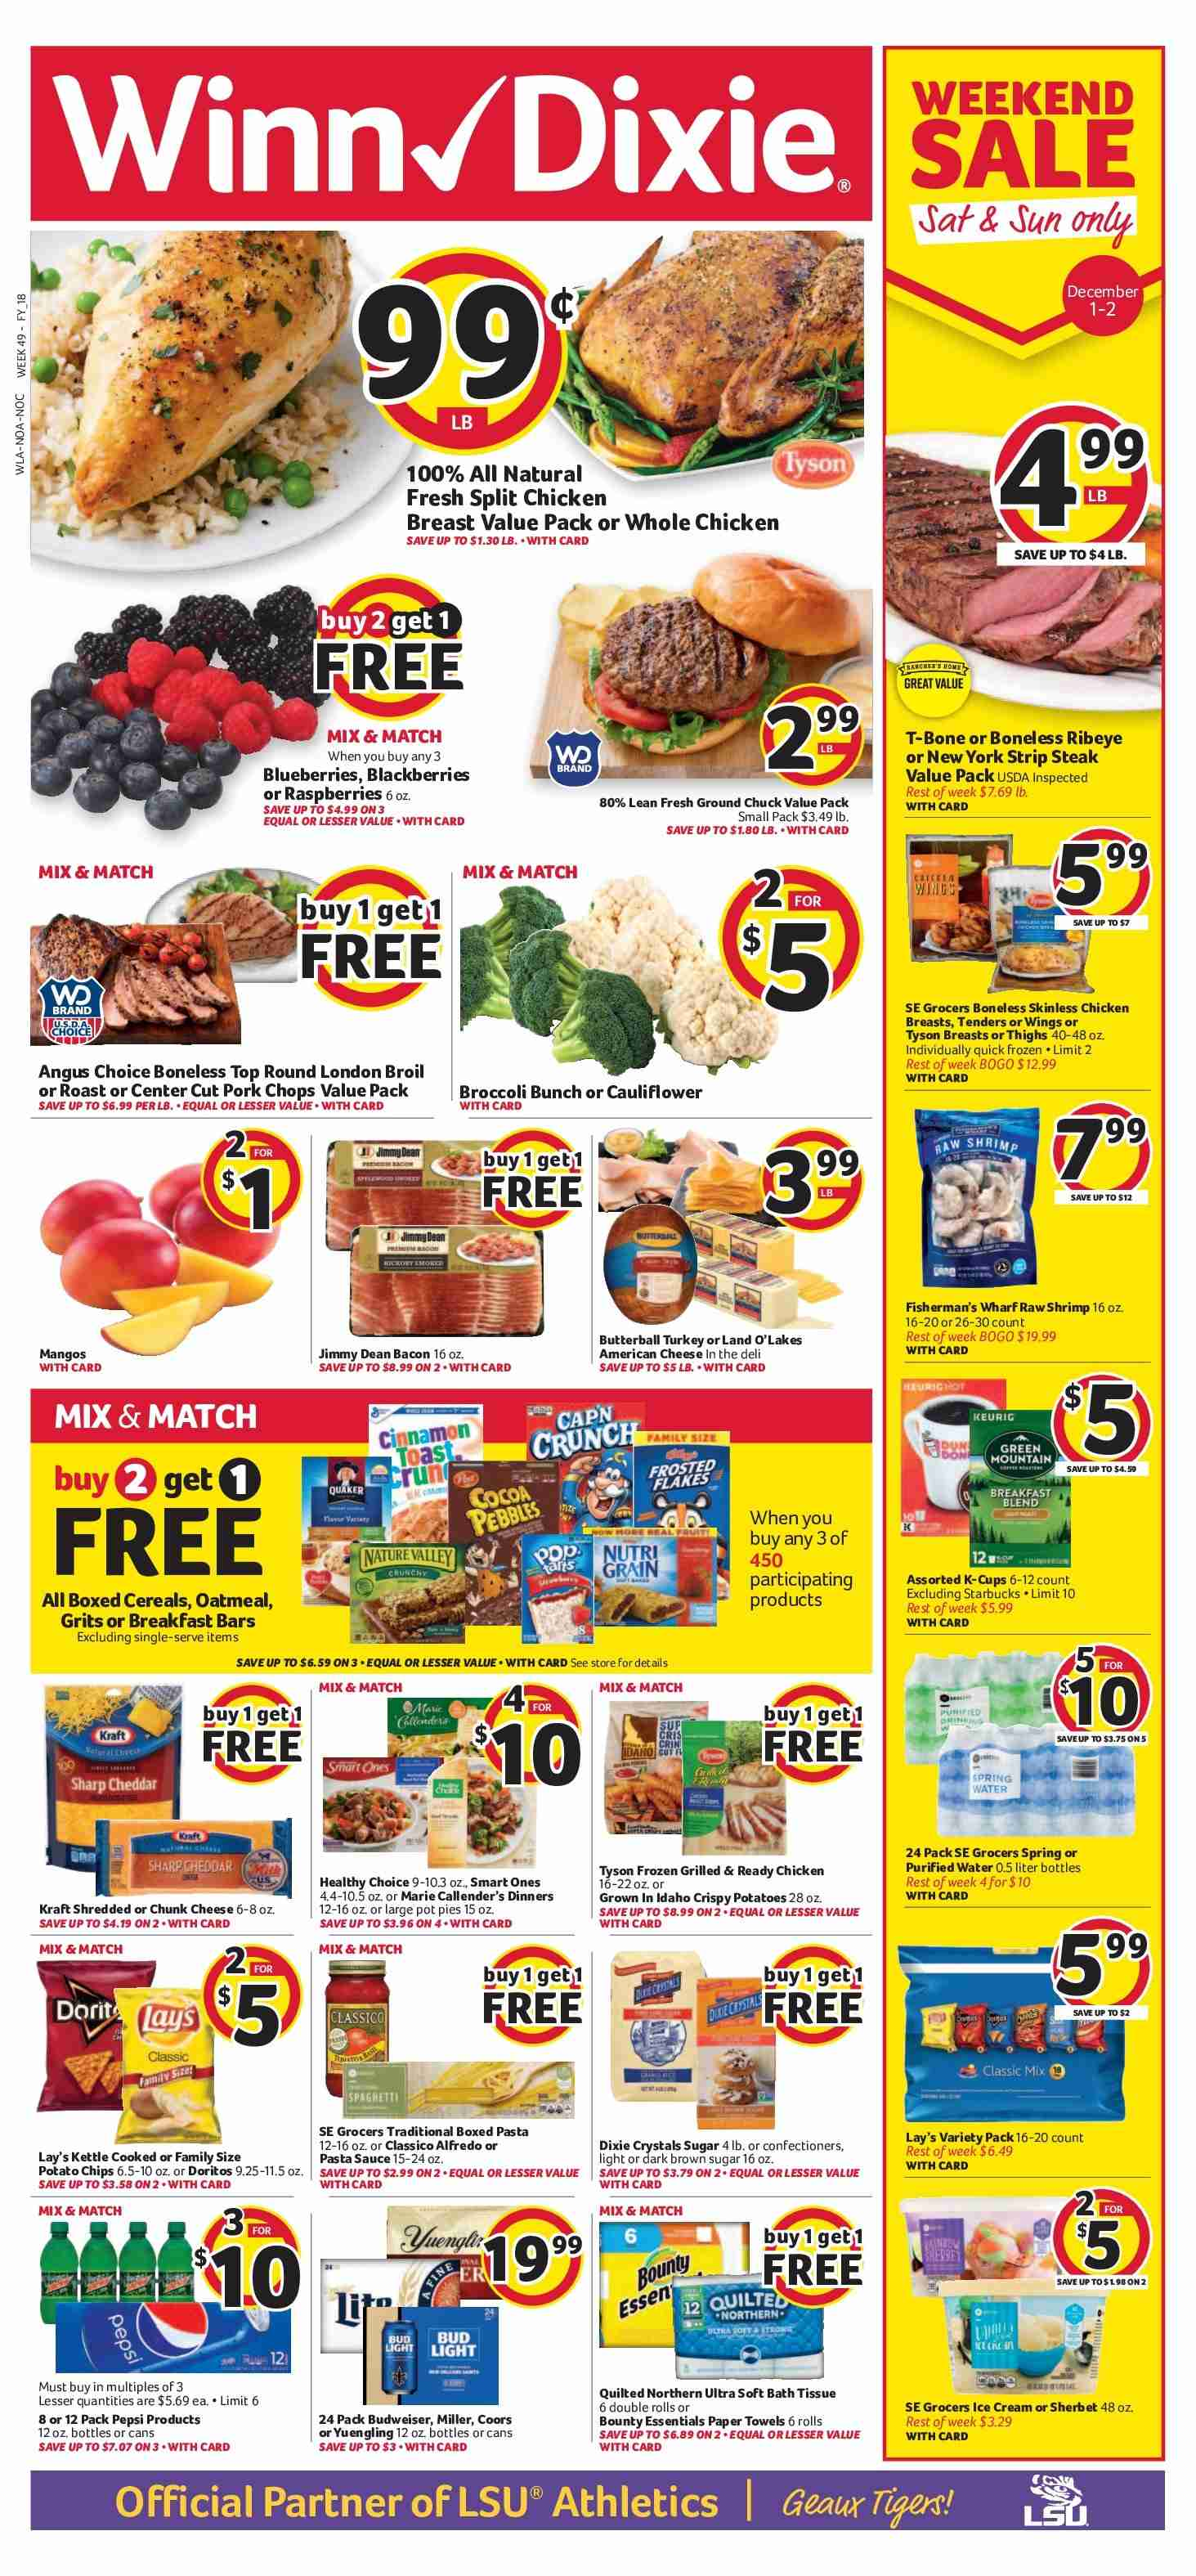 Winn Dixie Flyer - 11.28.2018 - 12.04.2018 - Sales products - Budweiser, Coors, Yuengling, broccoli, cauliflower, potatoes, mango, rolls, pot pies, Butterball, turkey, whole chicken, chicken, chicken breast, steak, ground chuck, pork chops, pork meat, shrimps, bacon, cheese, sauce, ice cream, sherbet, Bounty, Doritos, potato chips, chips, Lay's, cereals, oatmeal, alfredo sauce, pasta sauce, Pepsi, water, bath tissue, paper towel, Quilted Northern, Starbucks, essentials. Page 1.